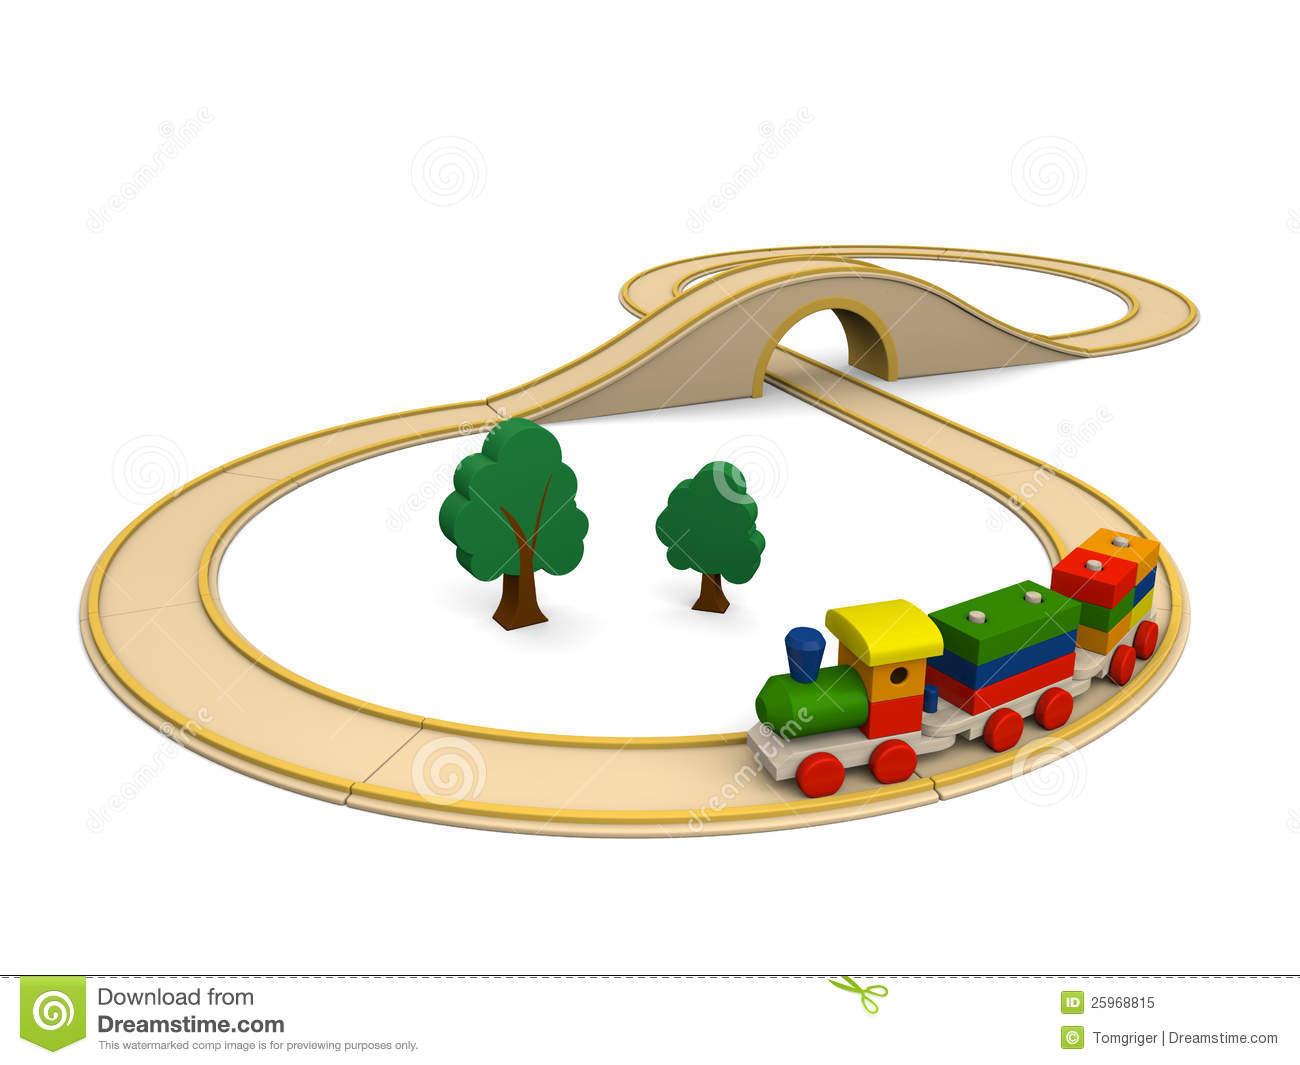 Wooden Toy Train With Track Royalty Free Stock Photo - Image: 25968815